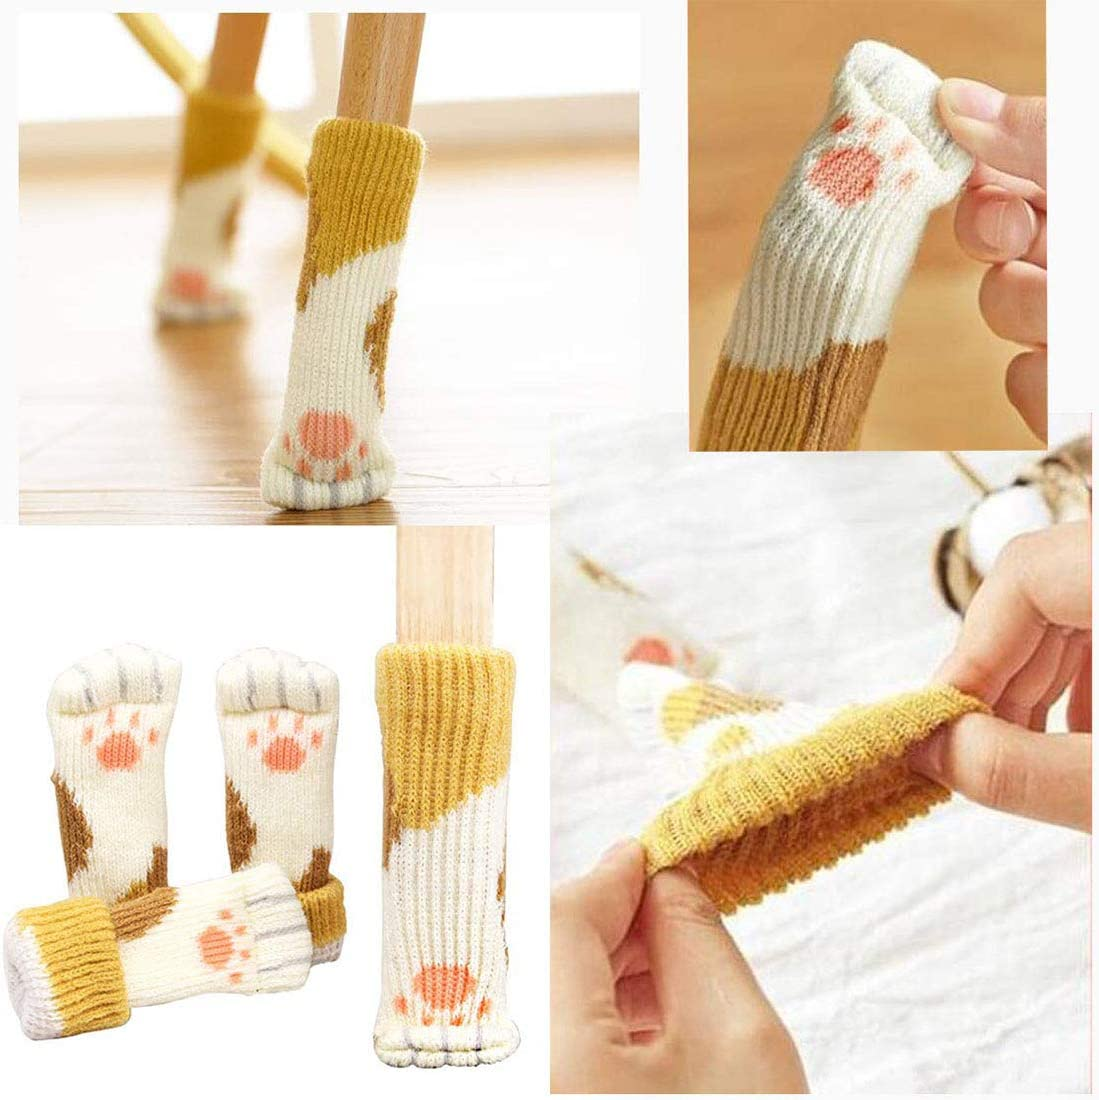 Thick Wood Floor Furniture Leg Protectors Pads Covers Caps Set 24PCS Chair Leg Socks Avoid Scratches /& Noise 6 Set Cat Paw Elastic Knitted Furniture Booties